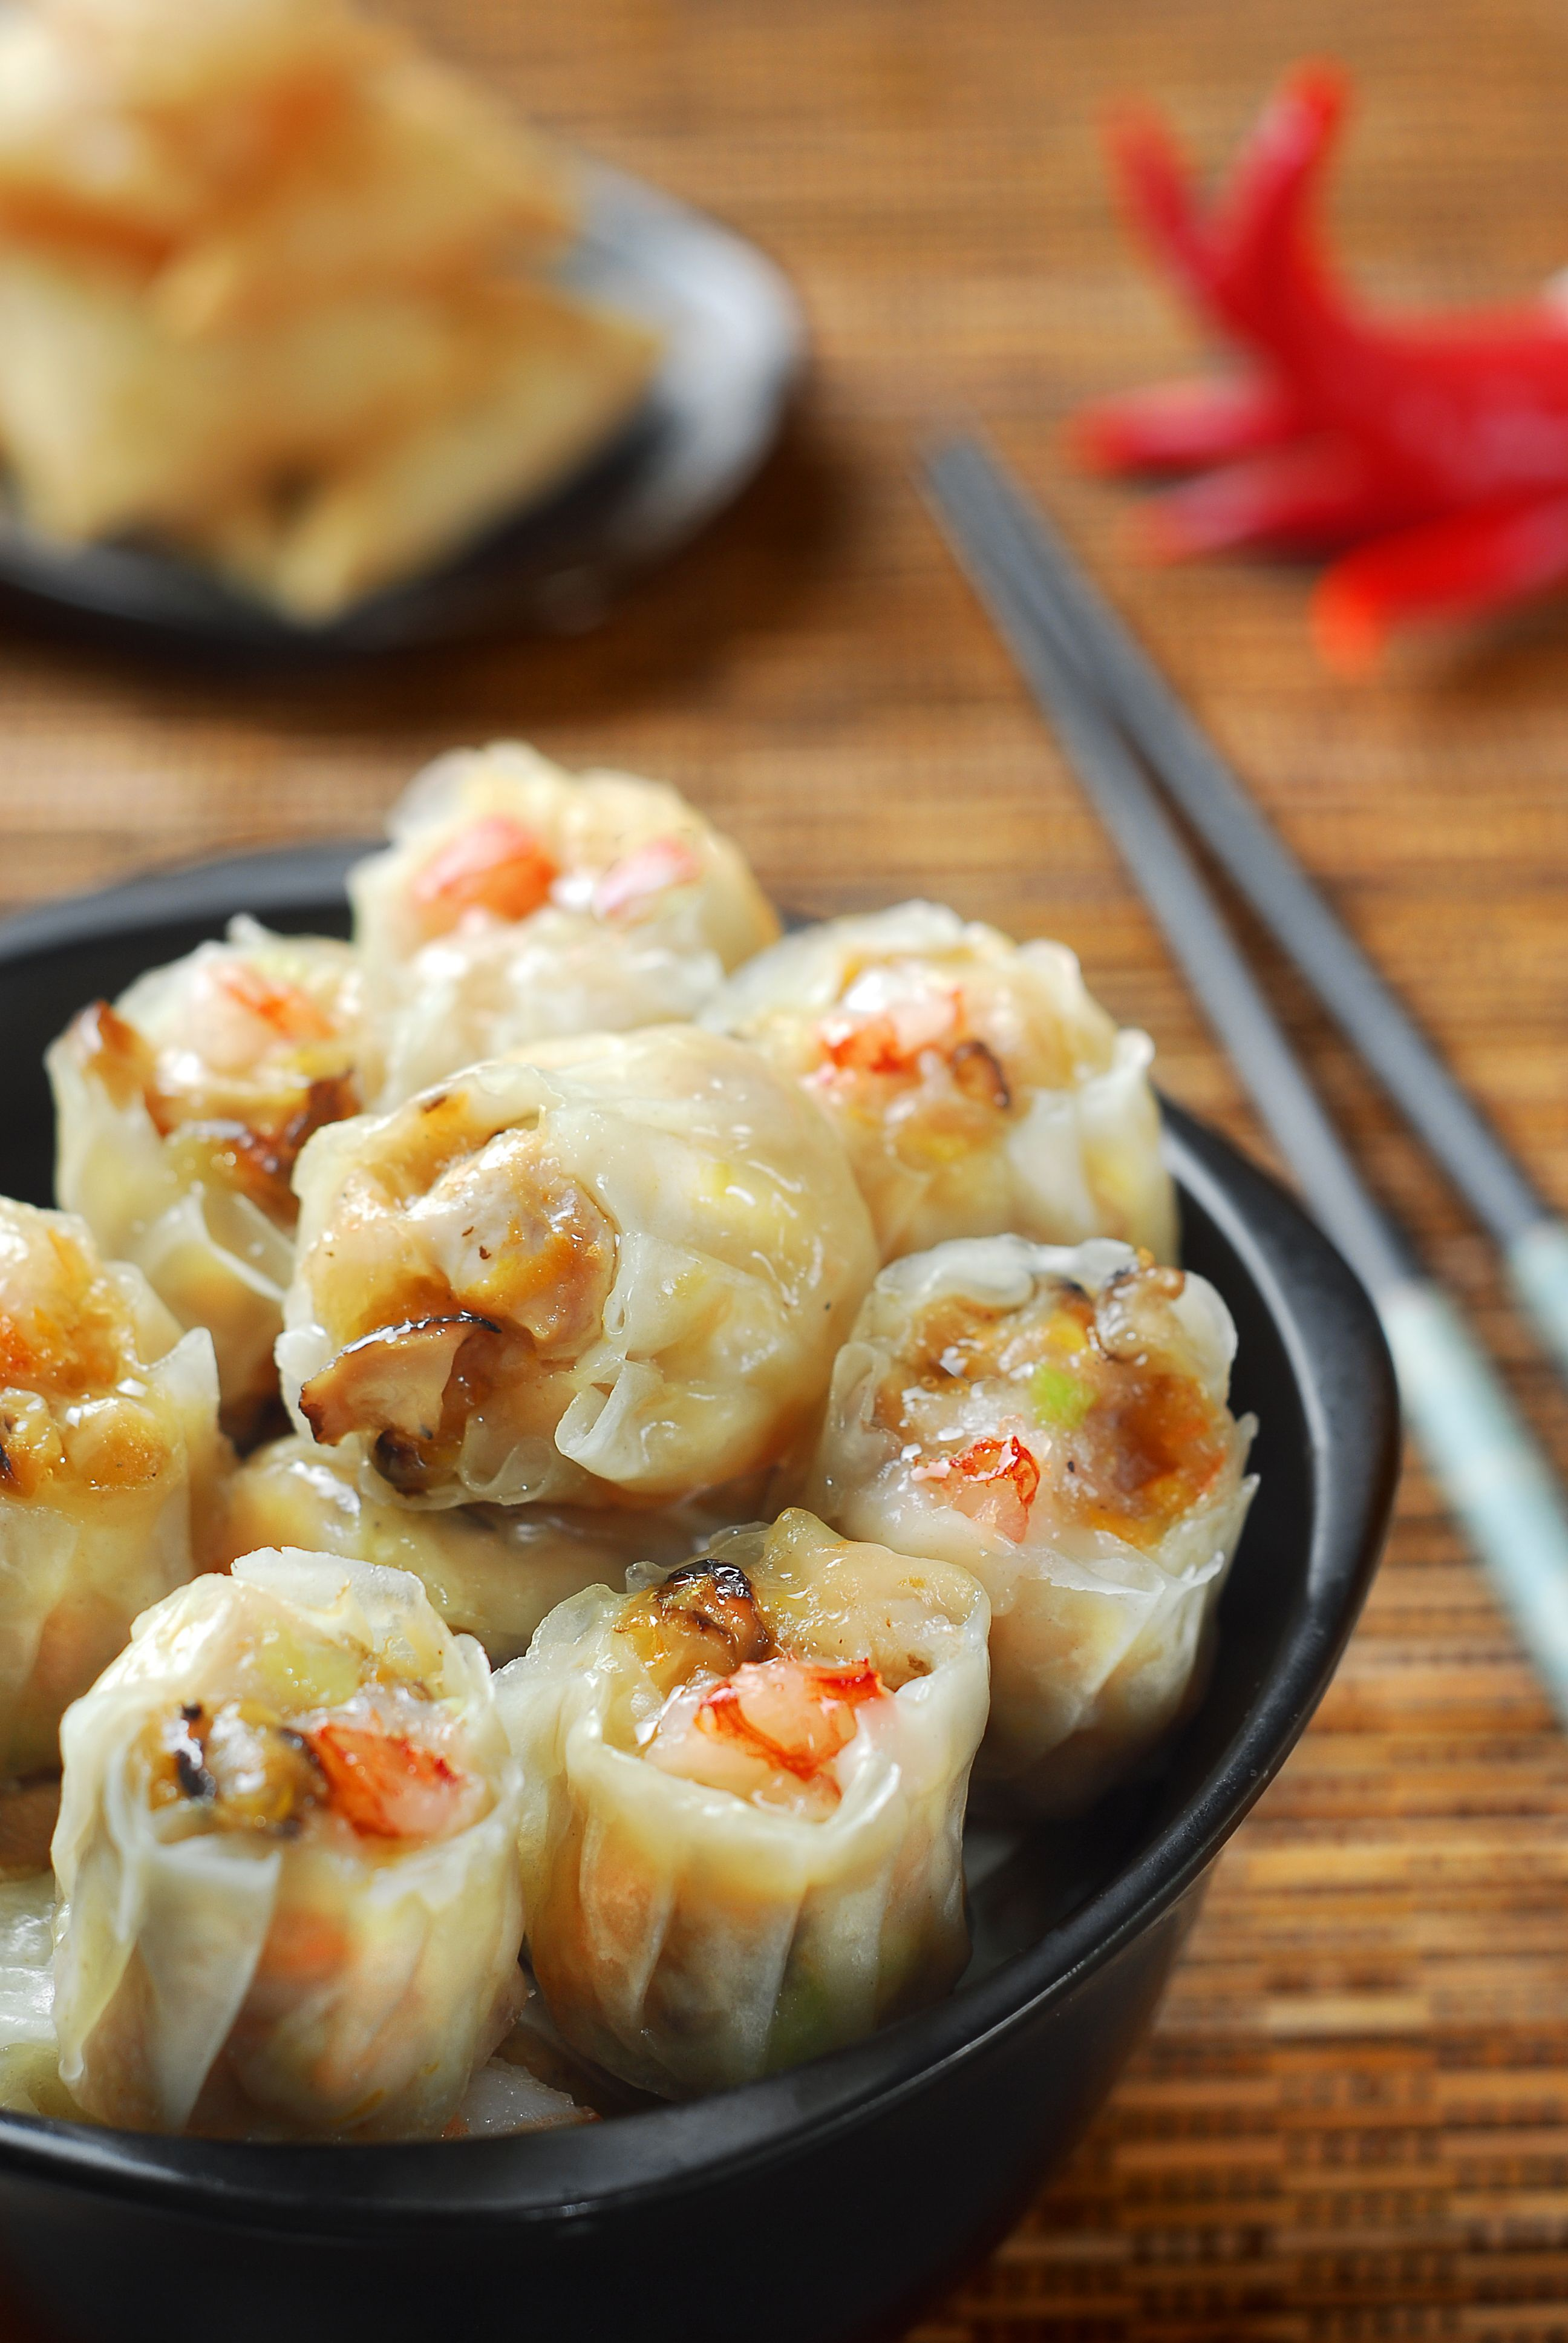 Chinese Food Made Easy With Our Frozen Yummy Dim Sum Http Www Sekarbumi Com Food Yummy Food Foodie